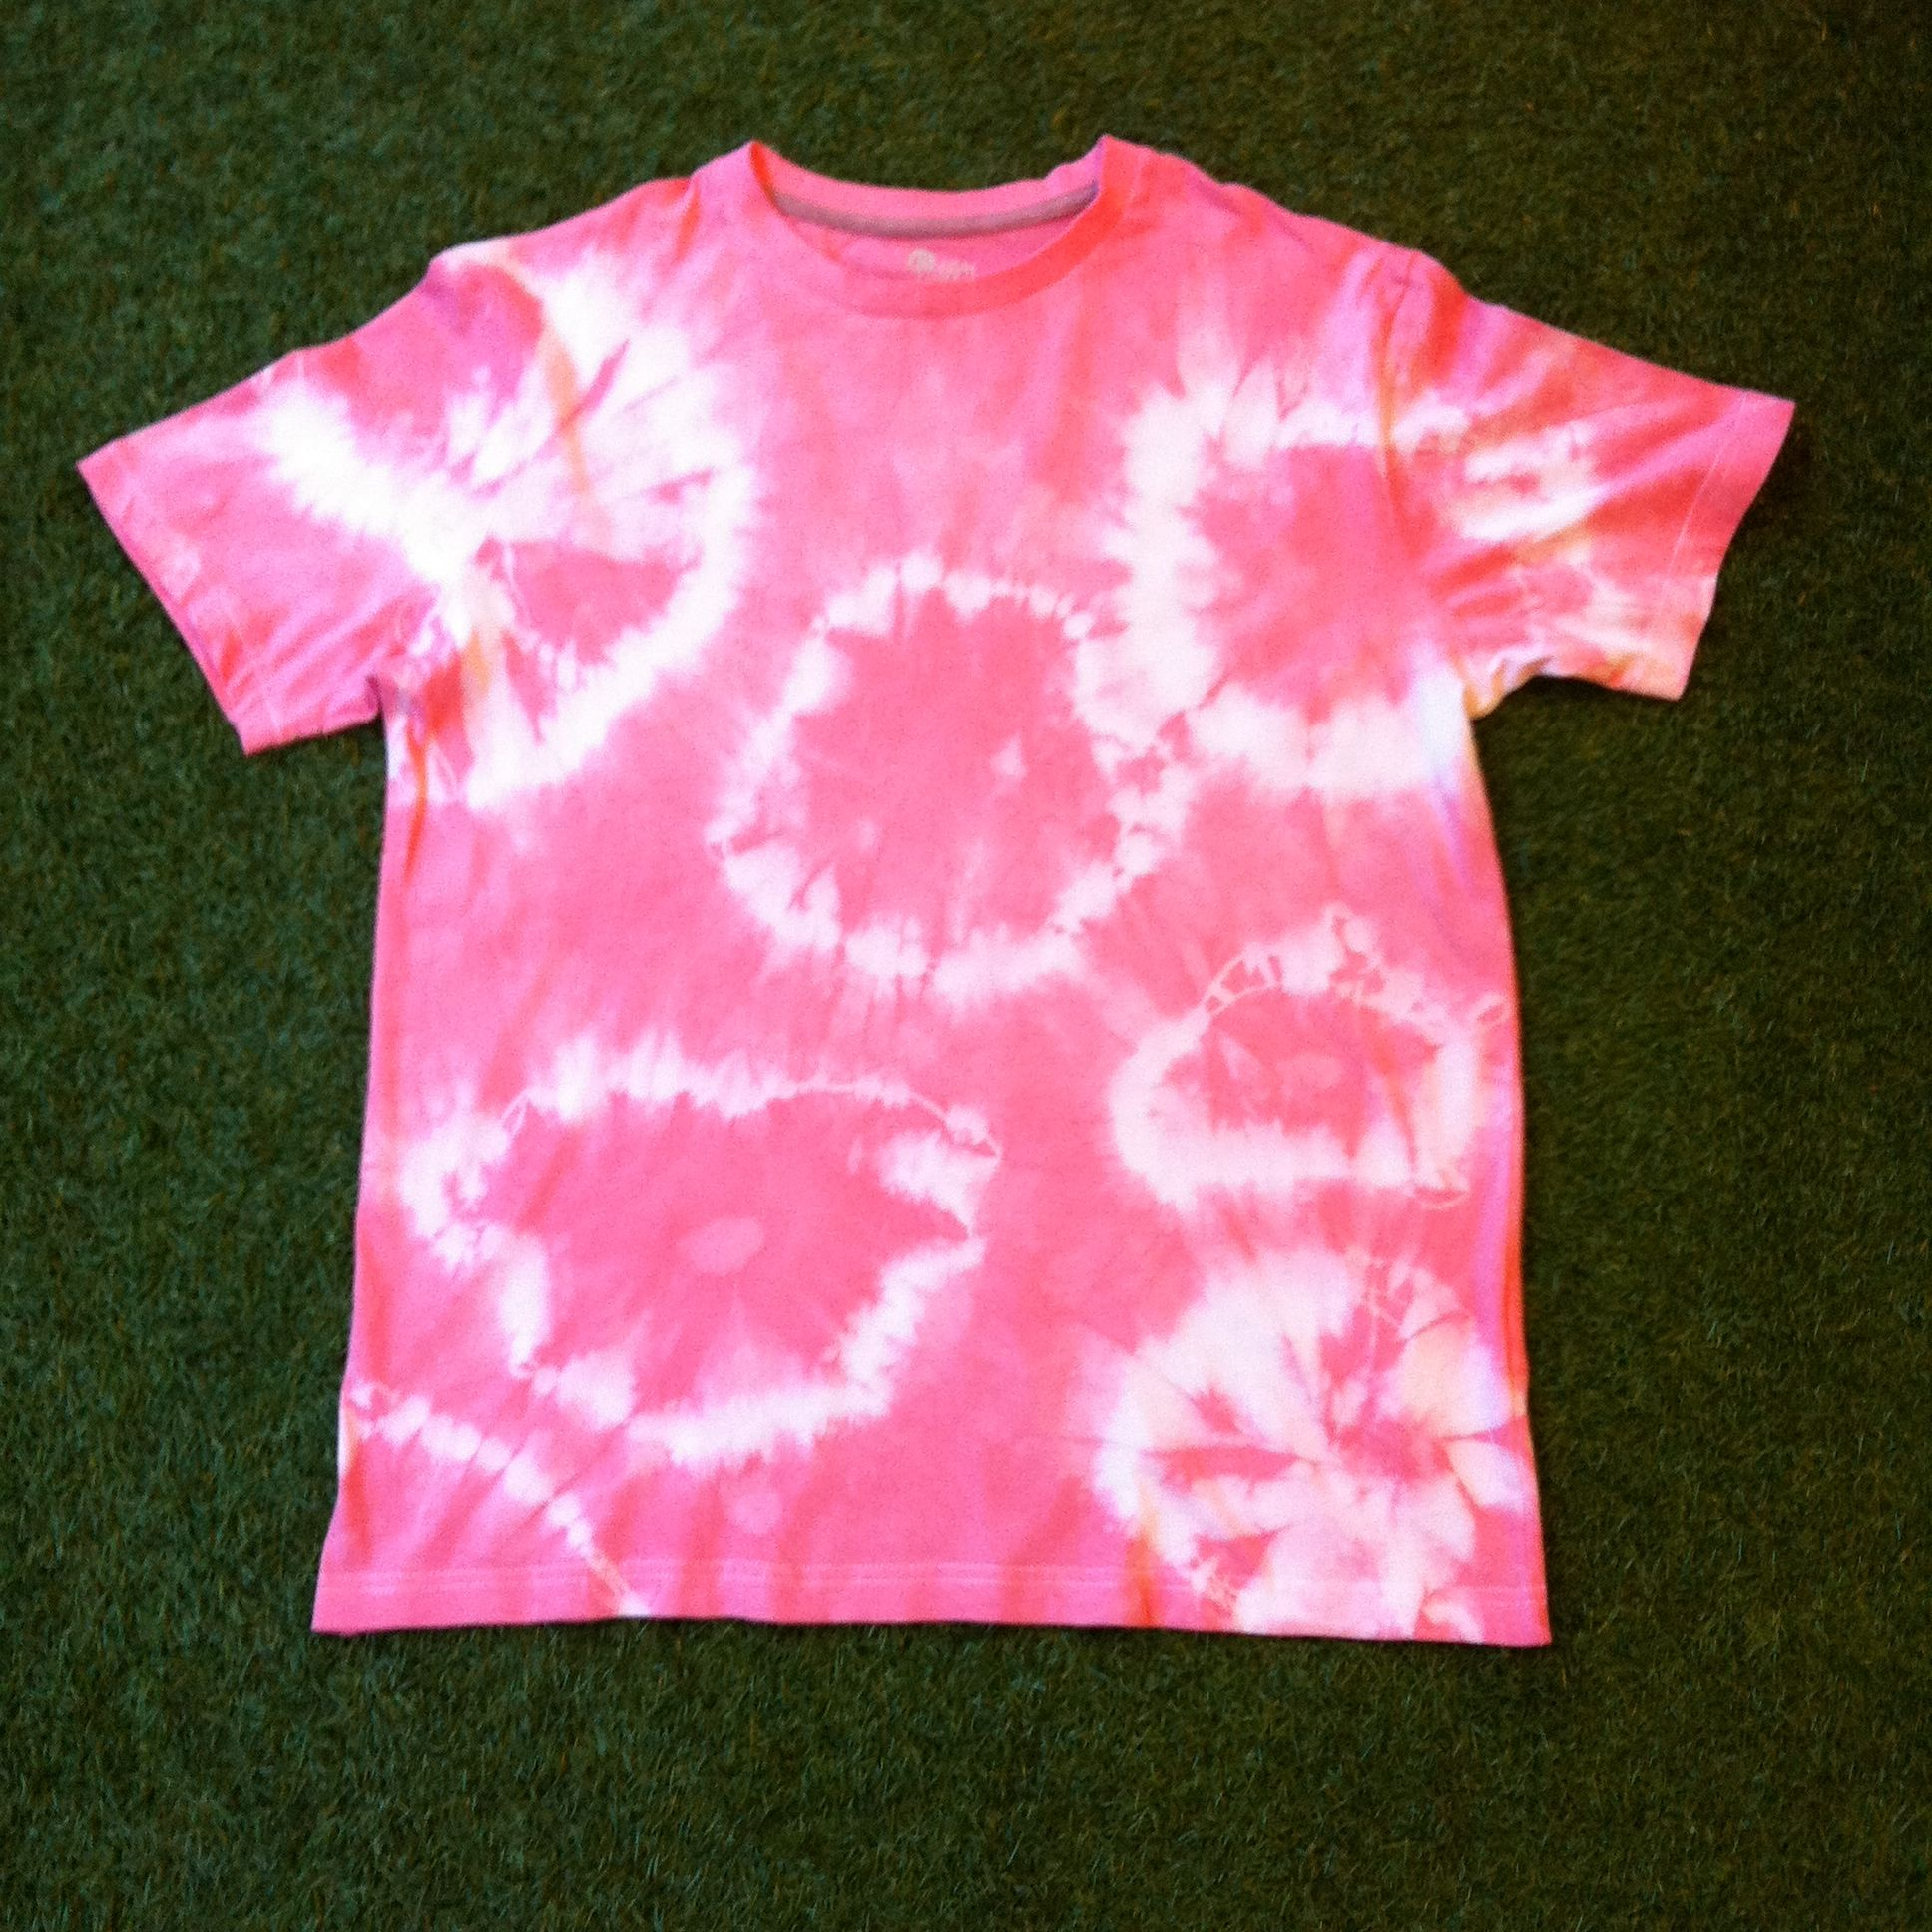 I am selling tie dye t-shirts, please visit: www.facebook.com/Forever864783 for more details.